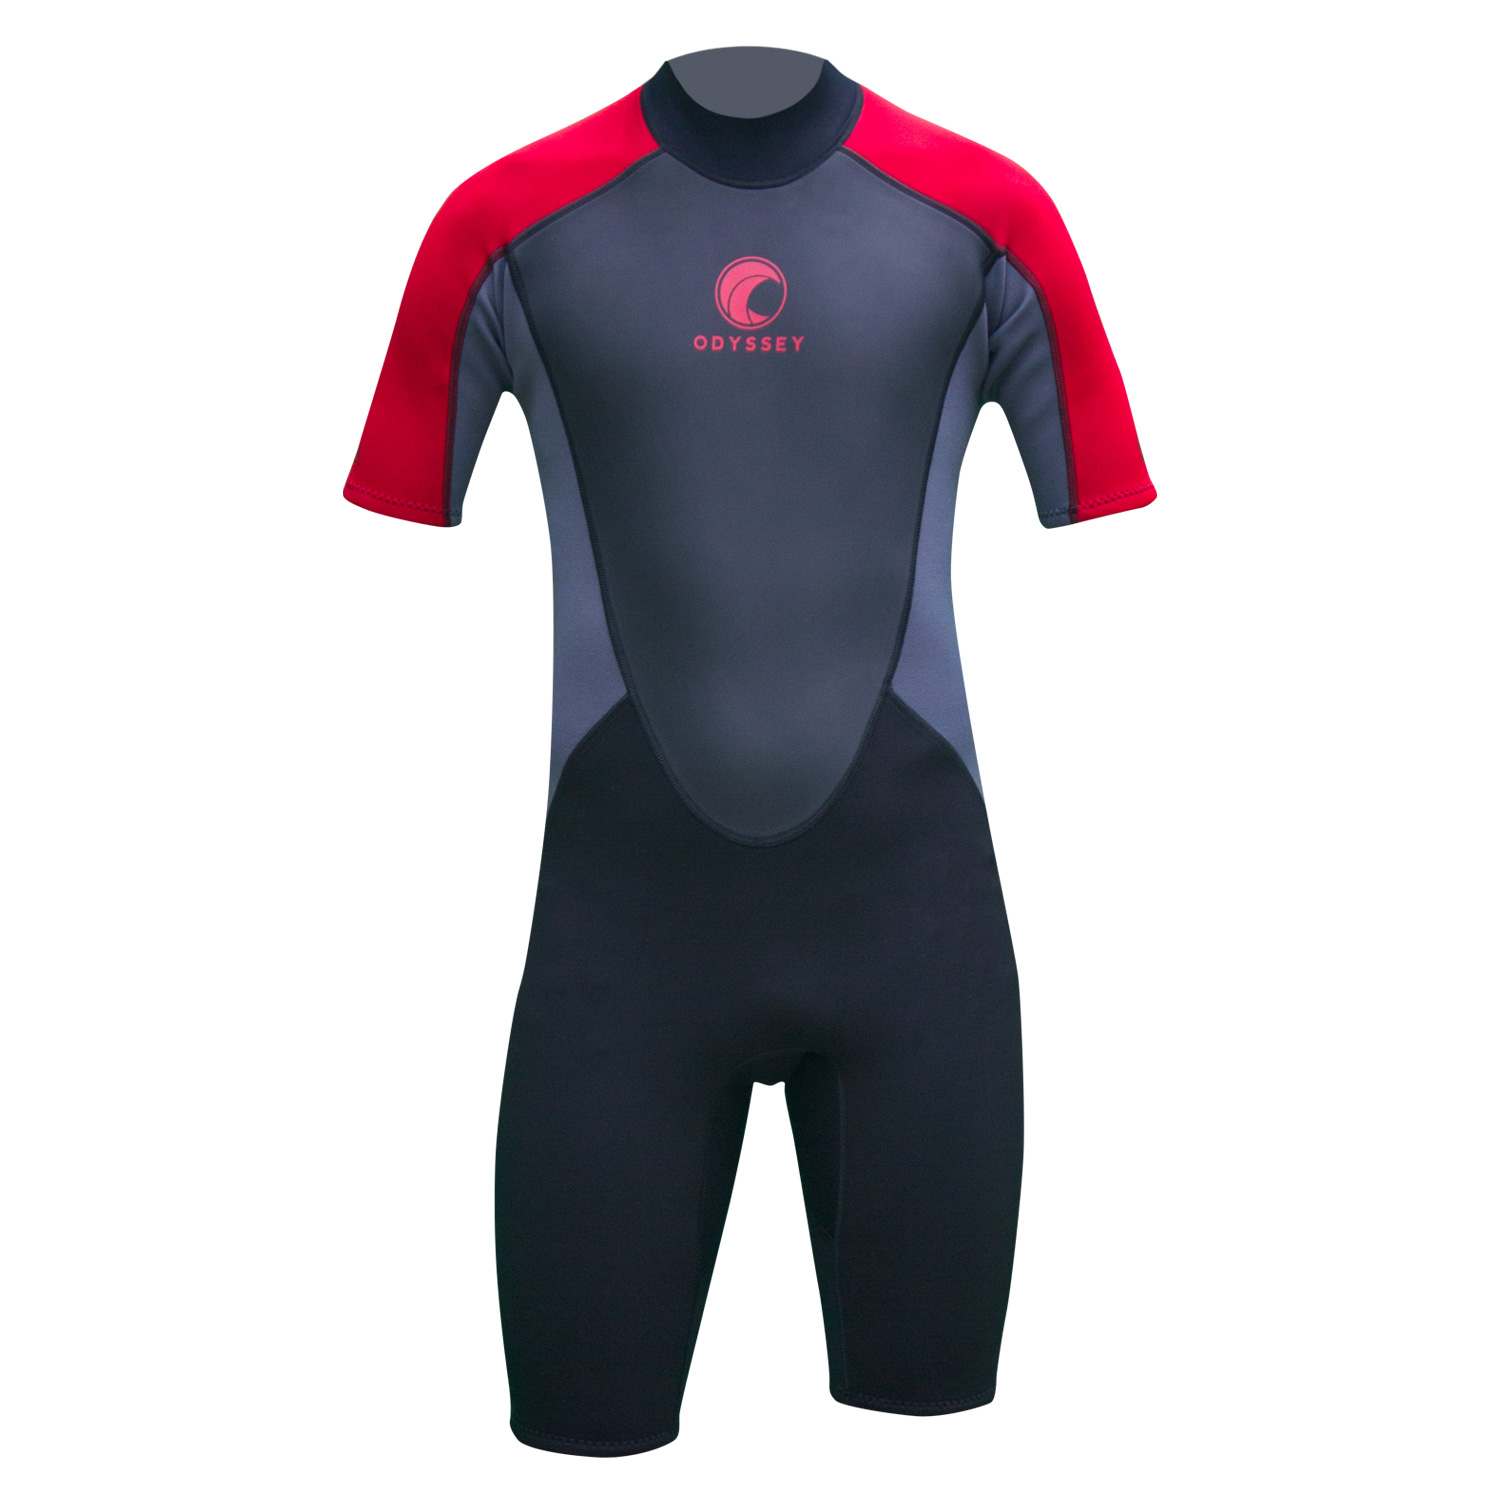 Odyssey-Core-3-2mm-Mens-Shorty-Wetsuit-Surf-Swim-Kayak-Shortie-Wet-Suit-S-XXL thumbnail 20